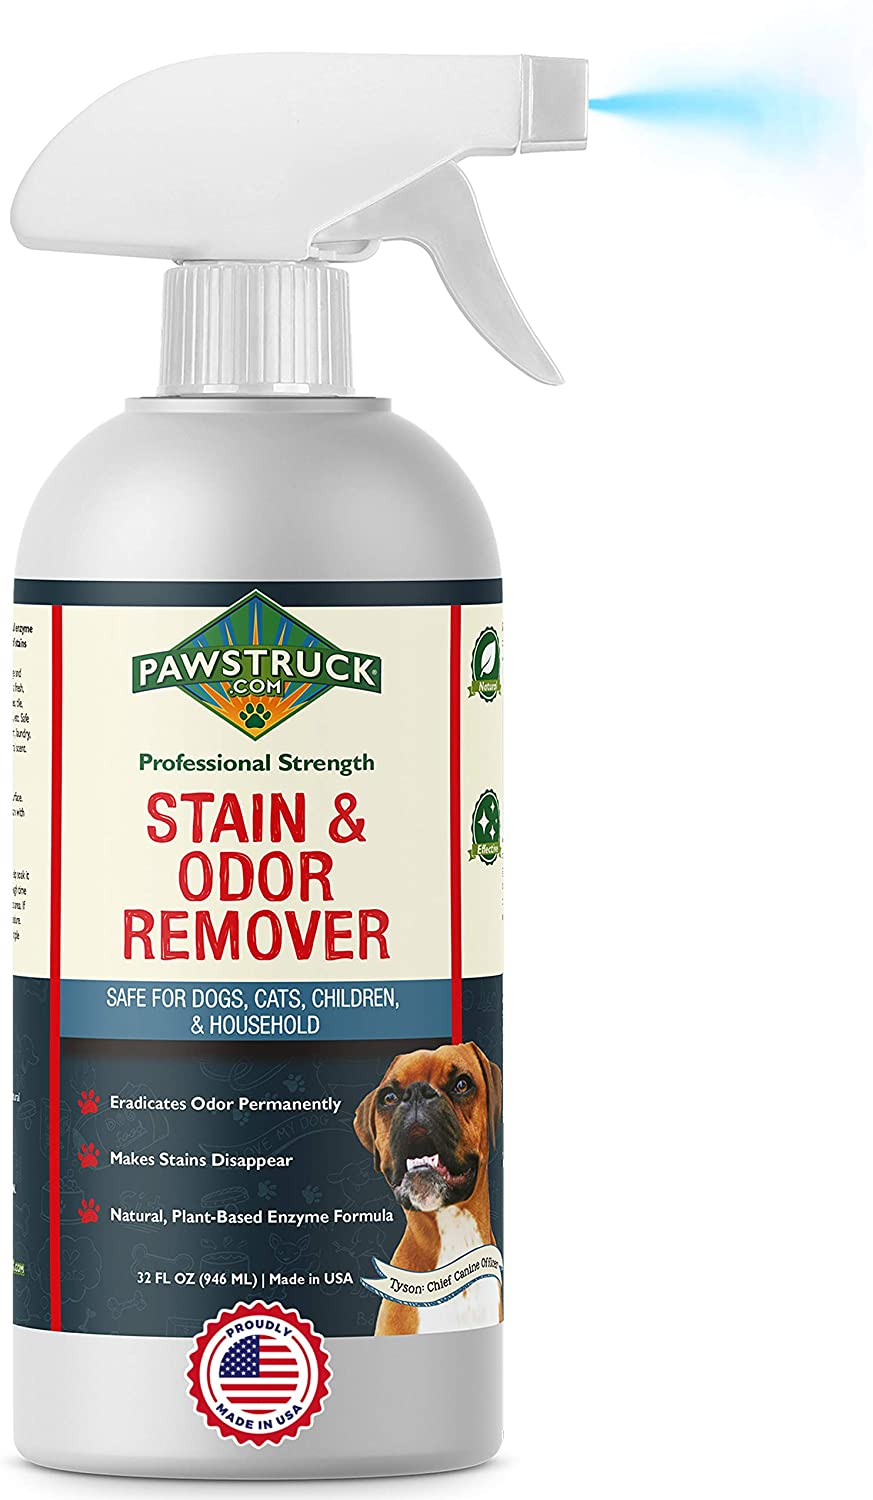 Pawstruck Stain & Odor Natural Carpet Cleaner